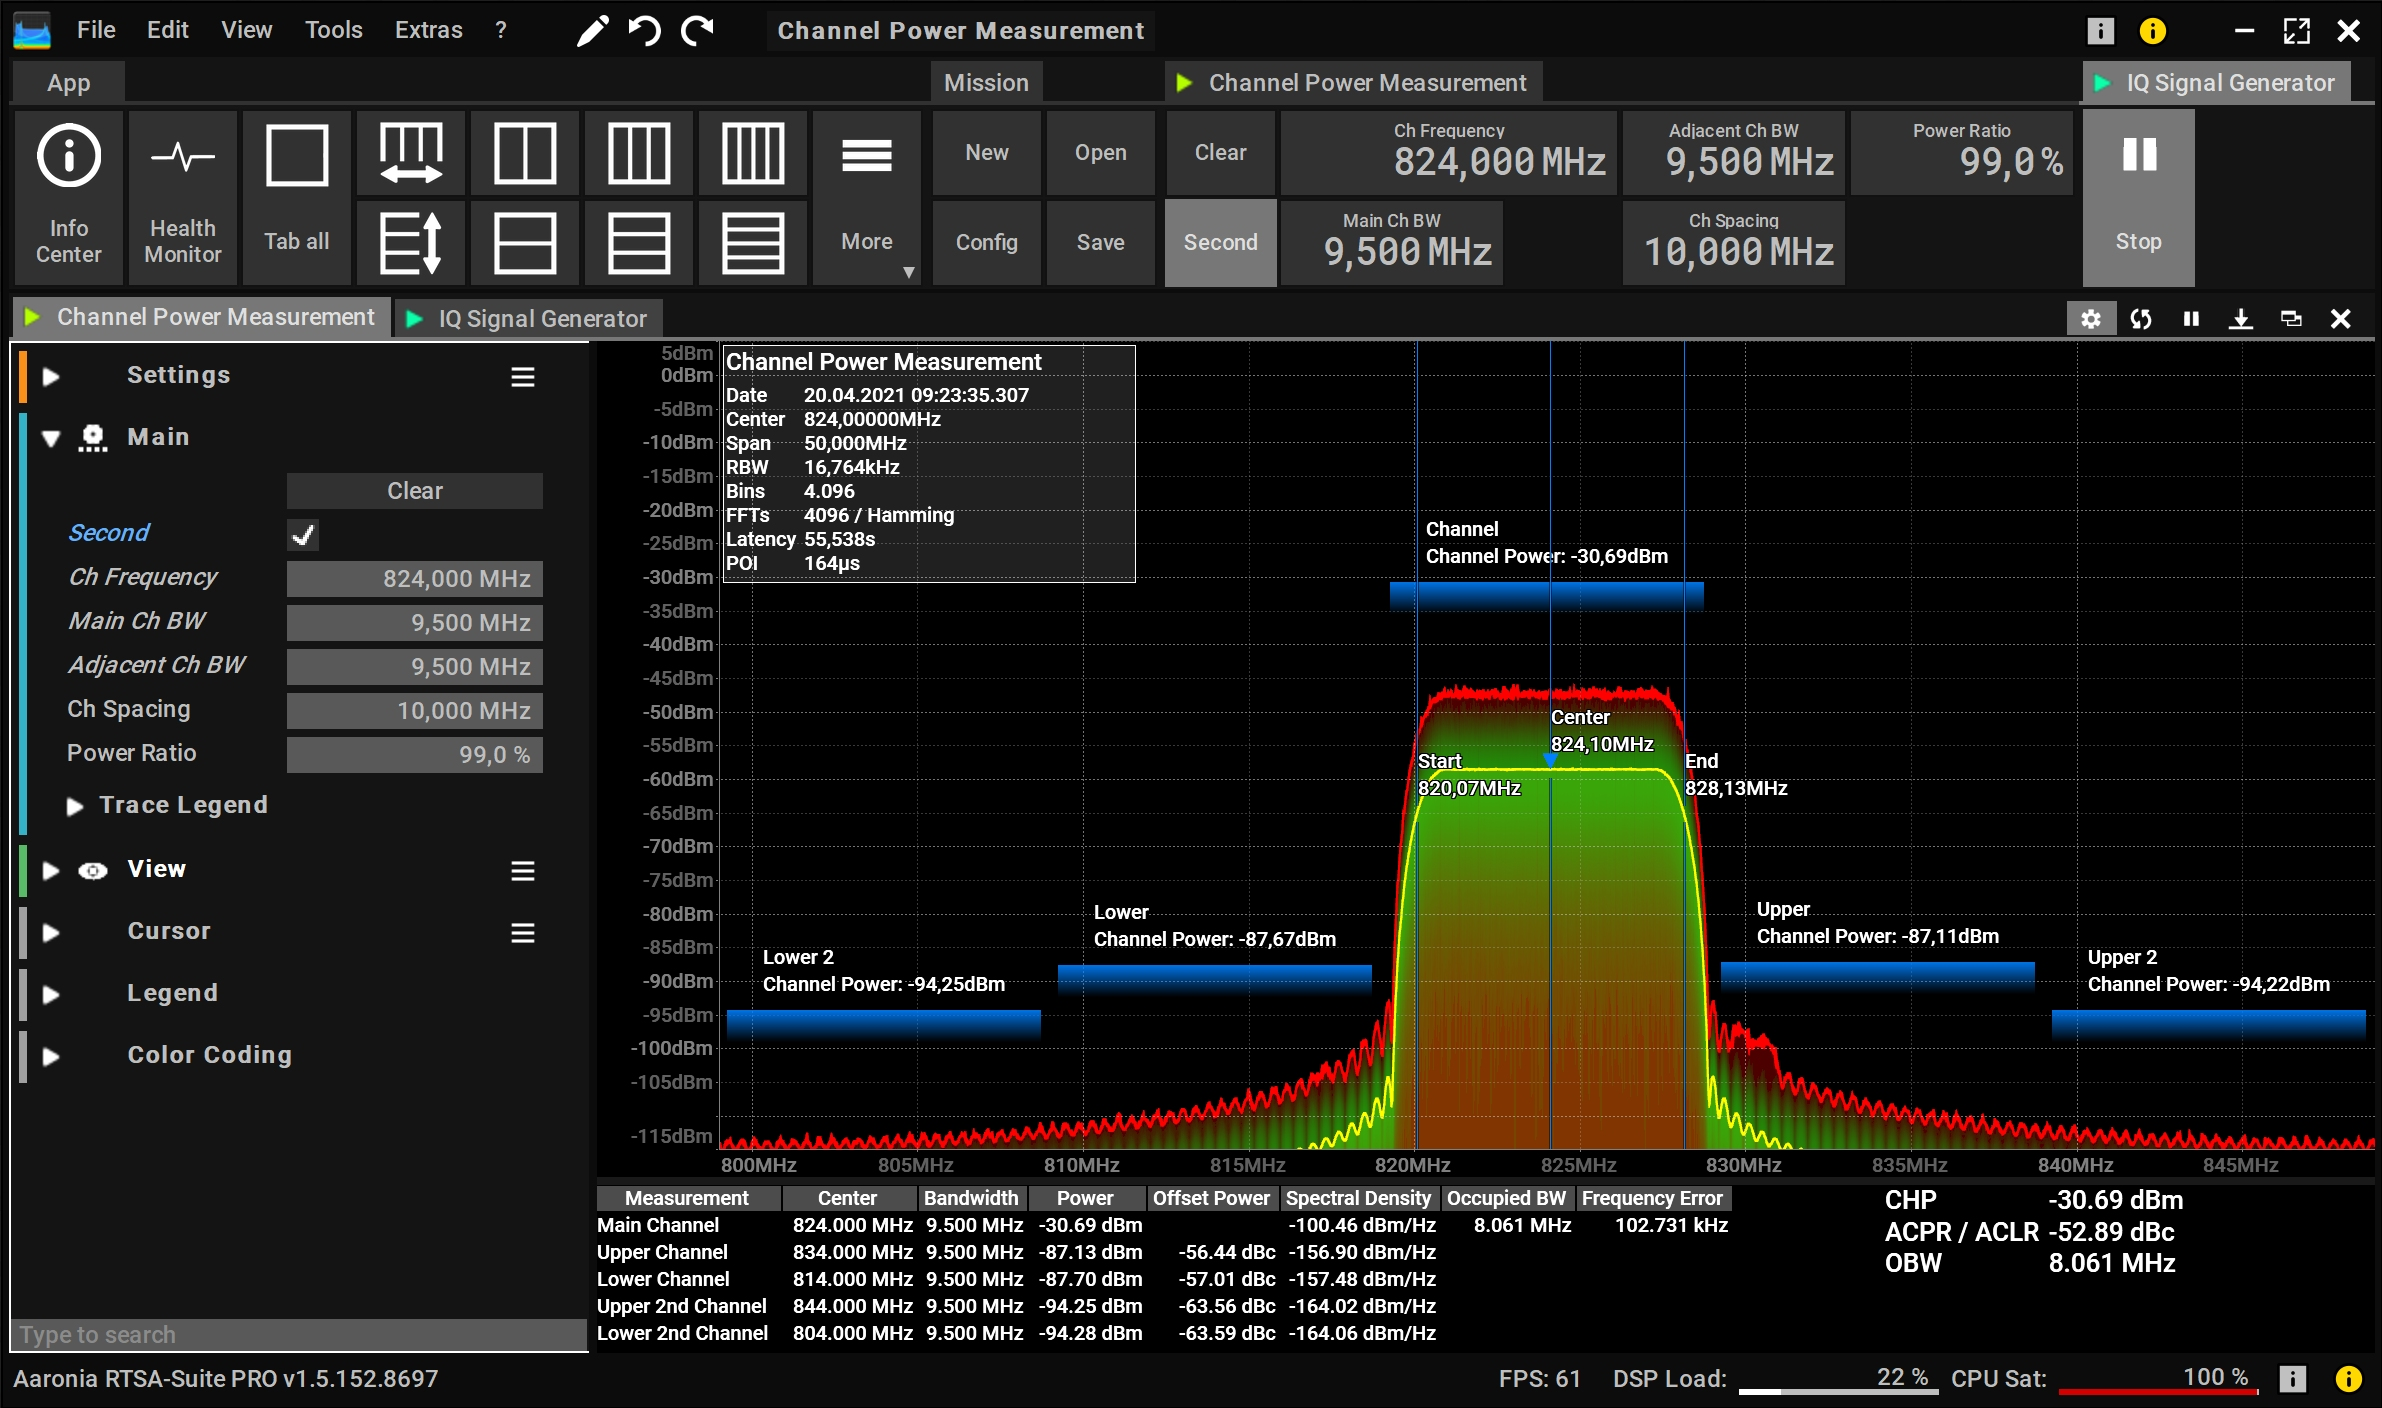 Channel Power Measurement incl. CHP, ACPR/ACLR and OBW